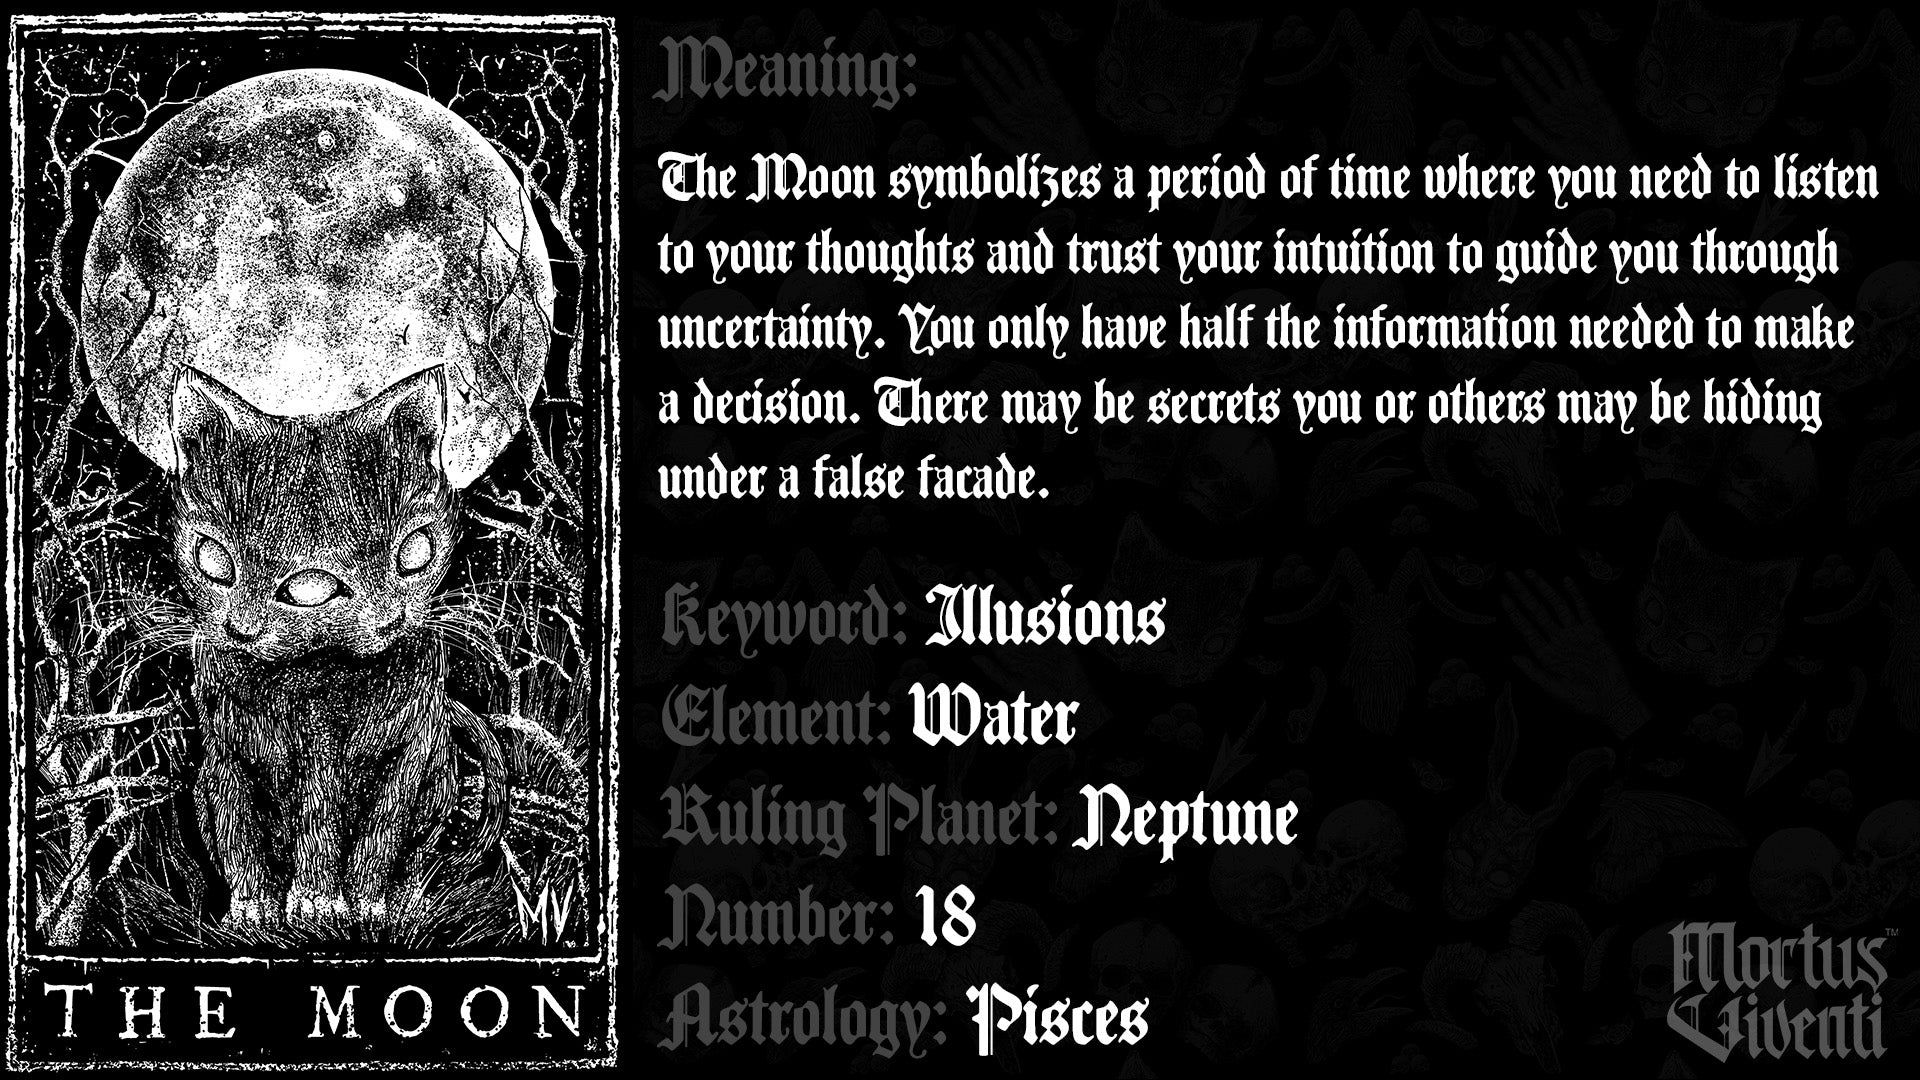 The Moon Tarot Card Meaning Mortus Viventi